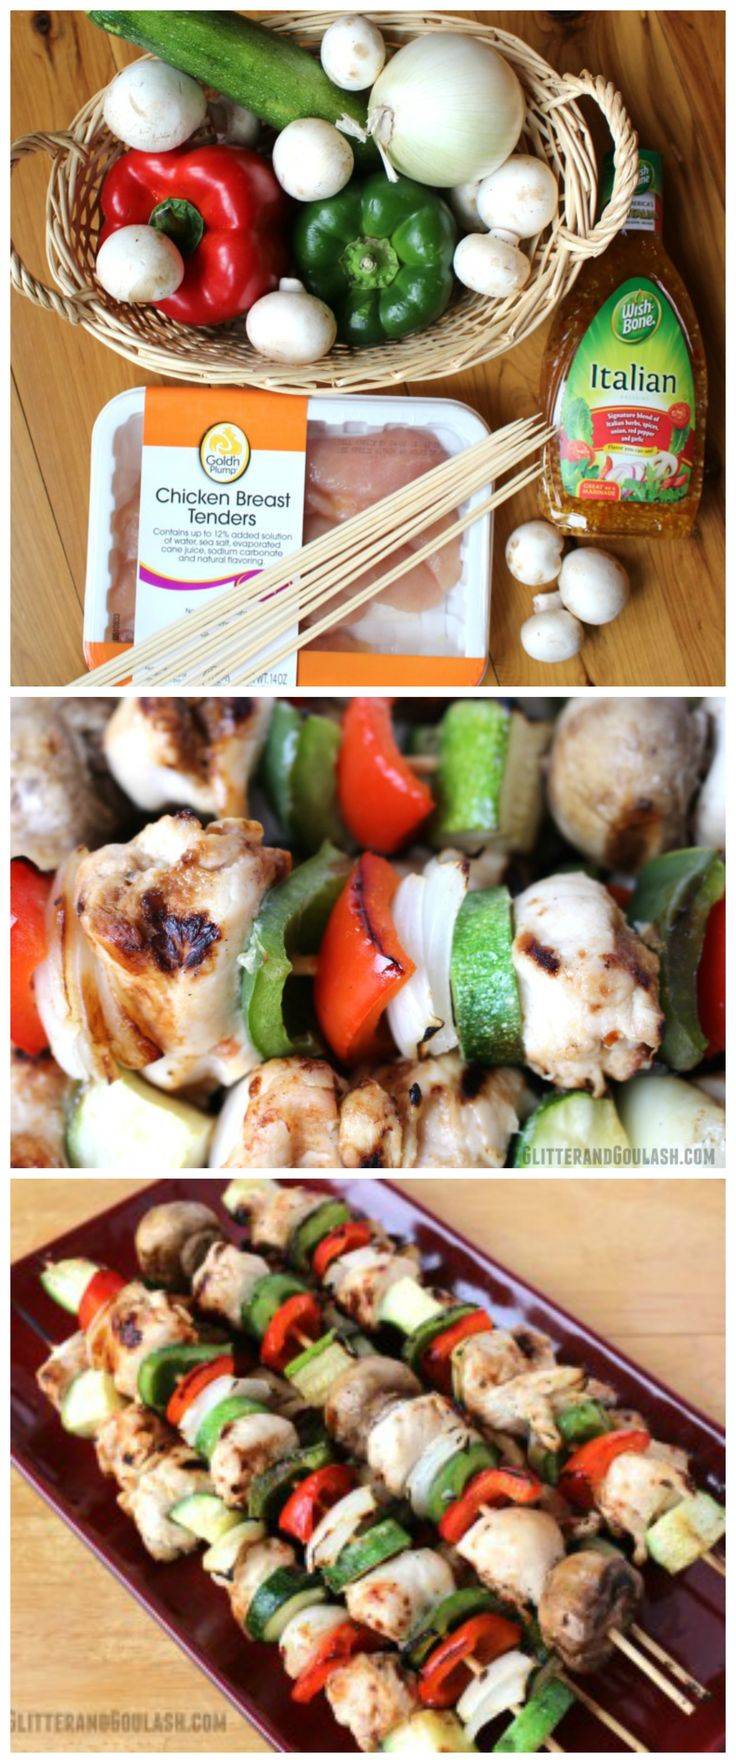 How long do i grill chicken kabobs - Grilled Chicken Kabobs